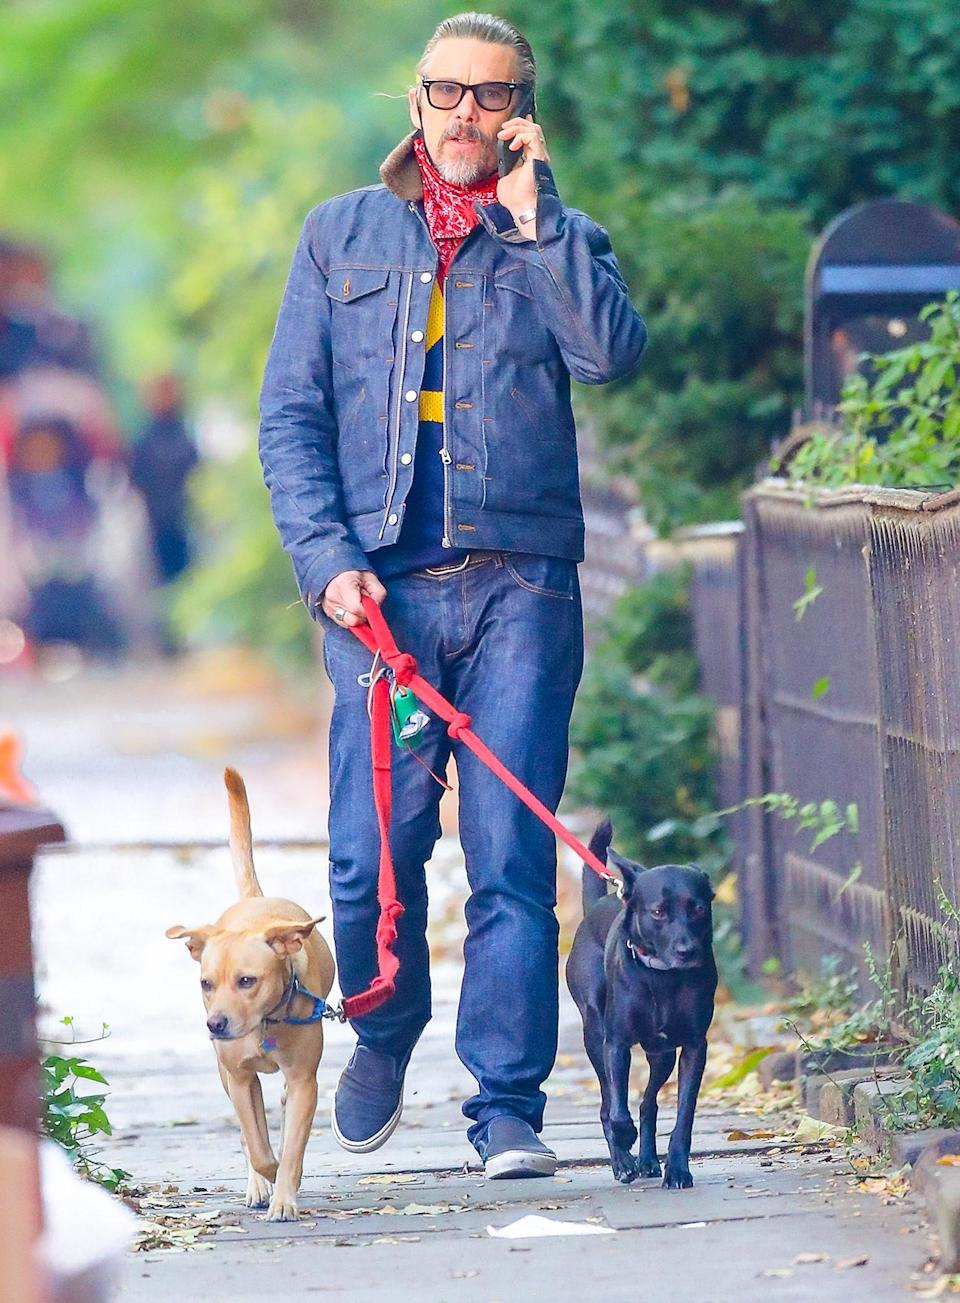 <p>Birthday boy Ethan Hawke, who turns 50 on Friday, chats on the phone while walking his dogs through N.Y.C.</p>